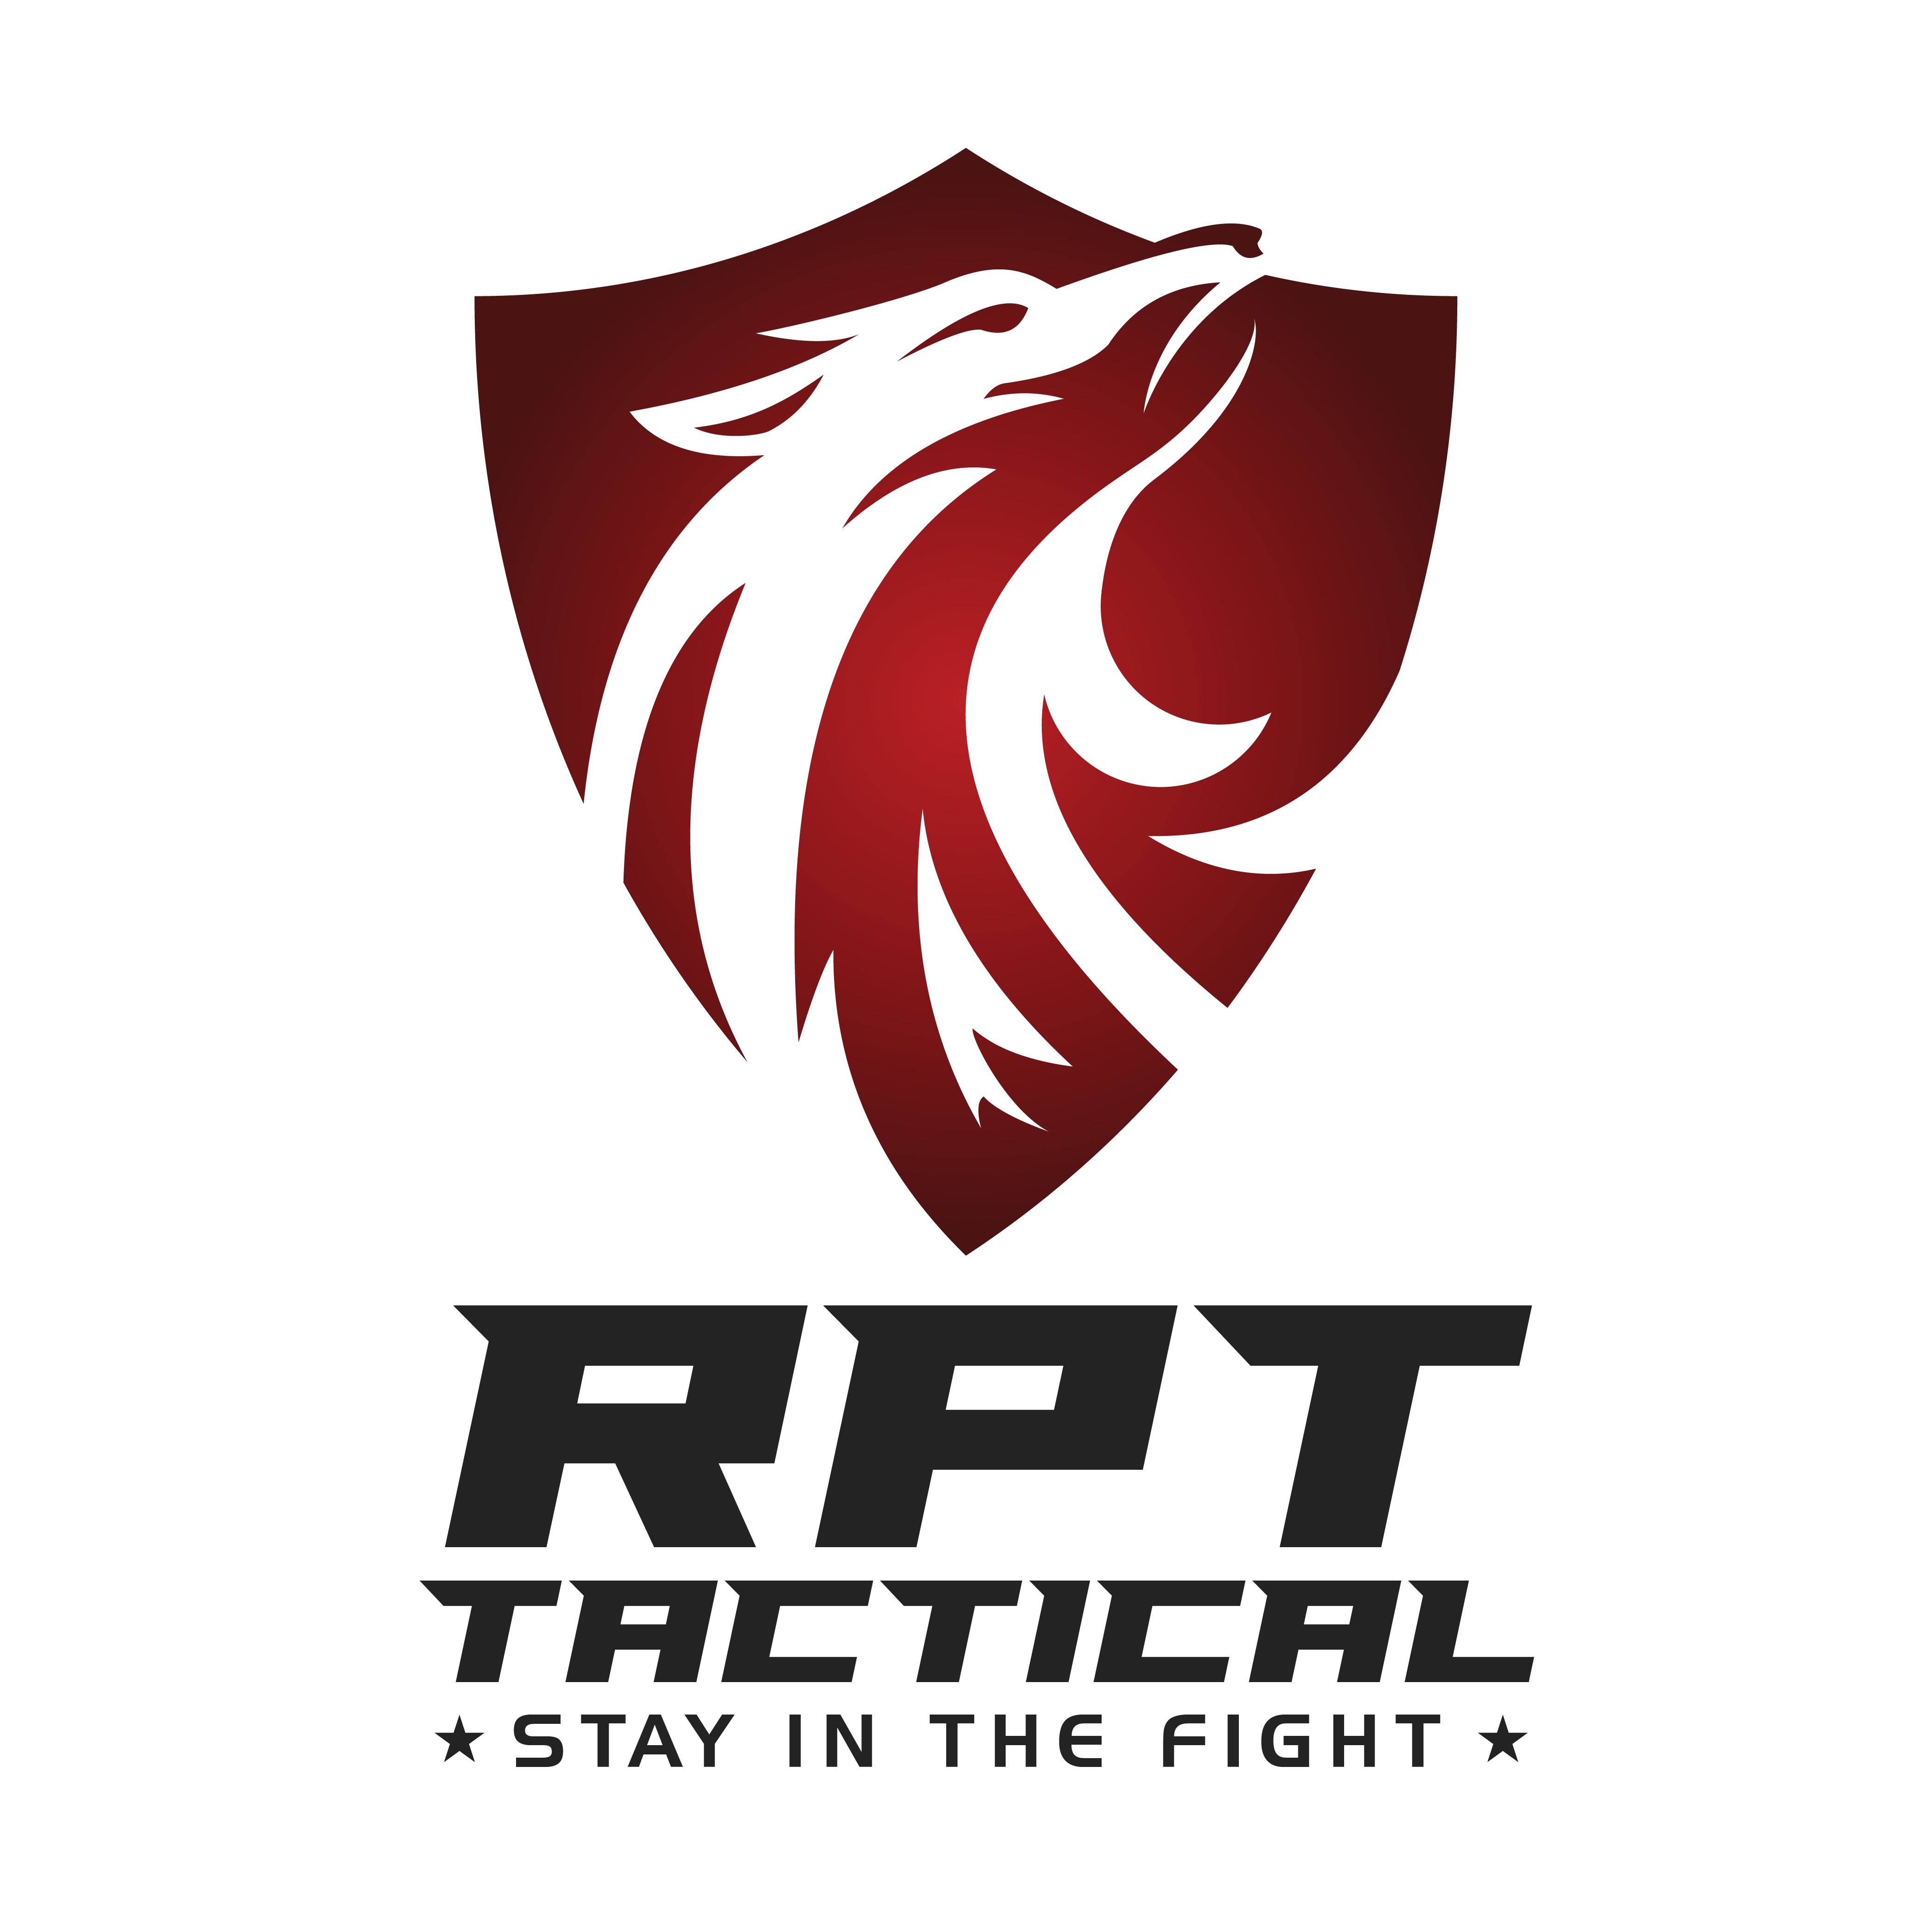 RPT Tactical needs a strong logo to convey our identity